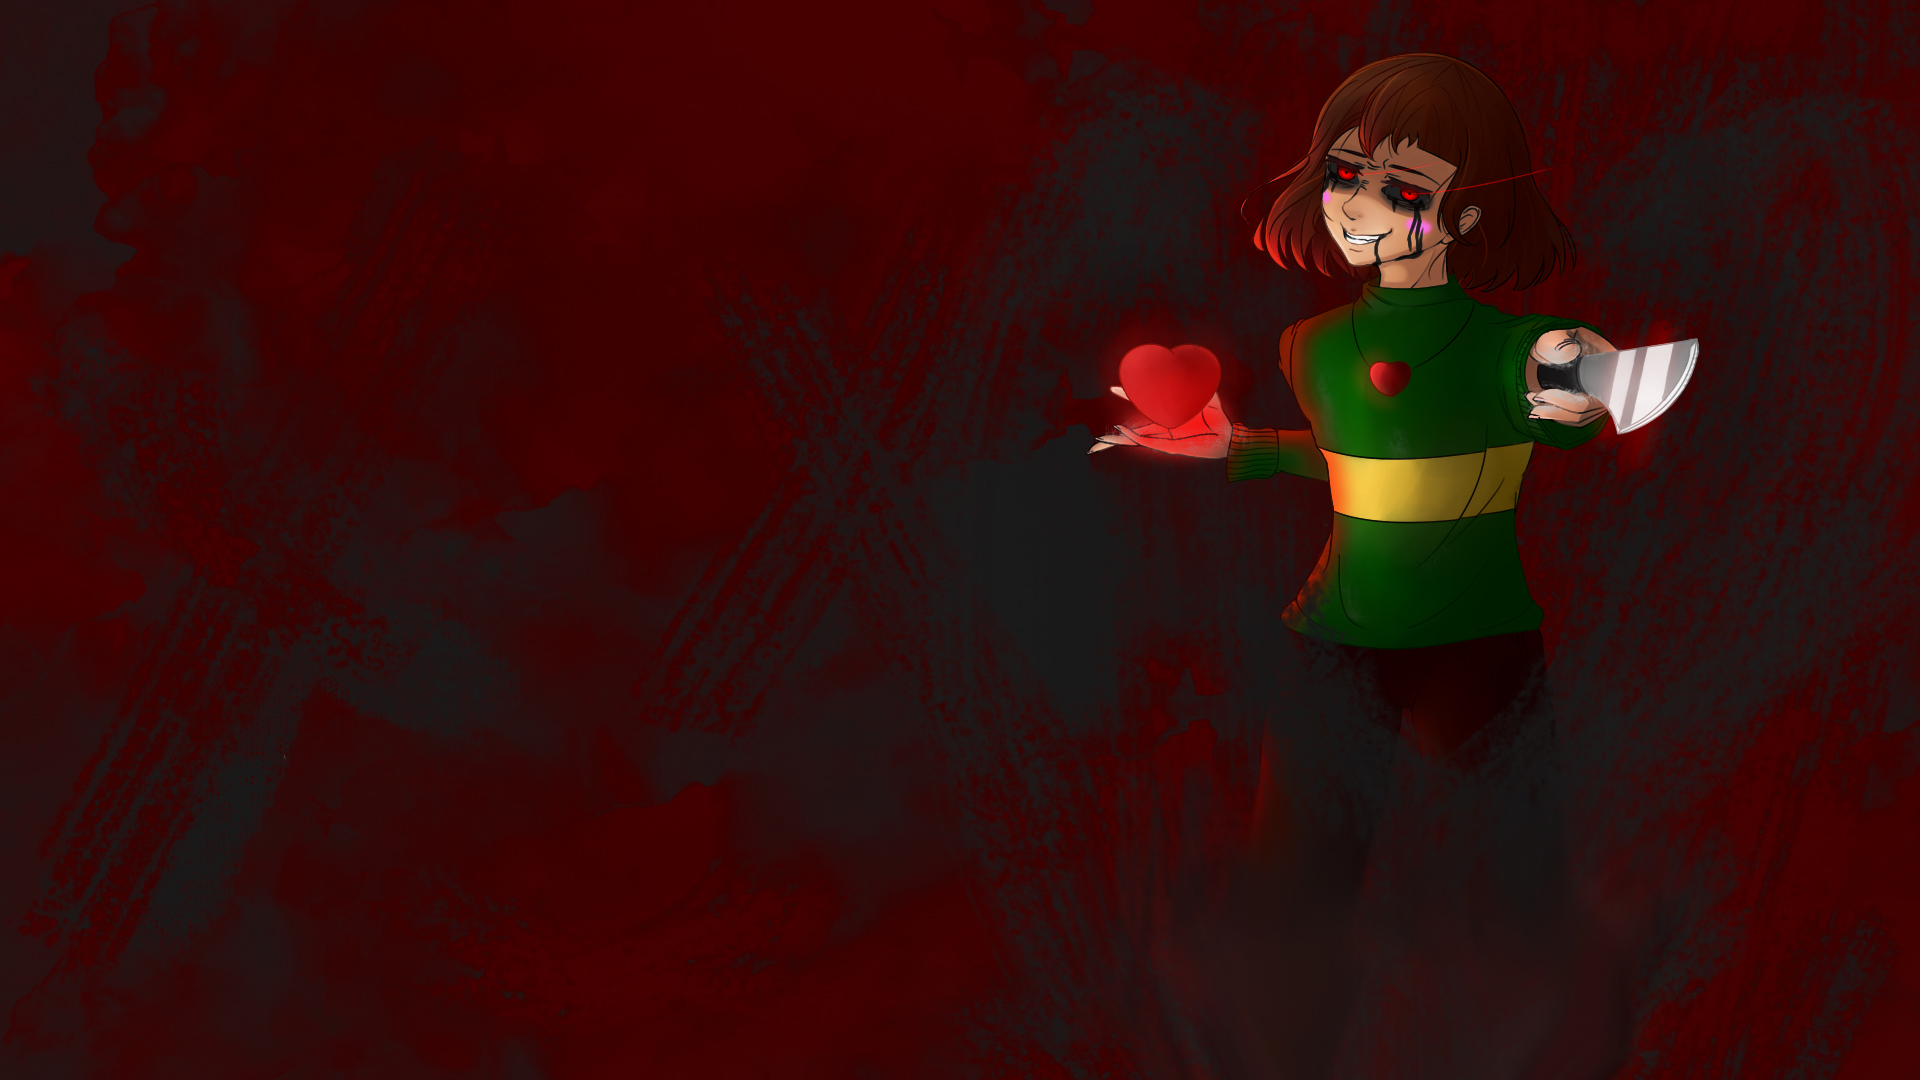 Chara   The World is Ending Undertale Wallpaper by DigitalColdI on 1920x1080